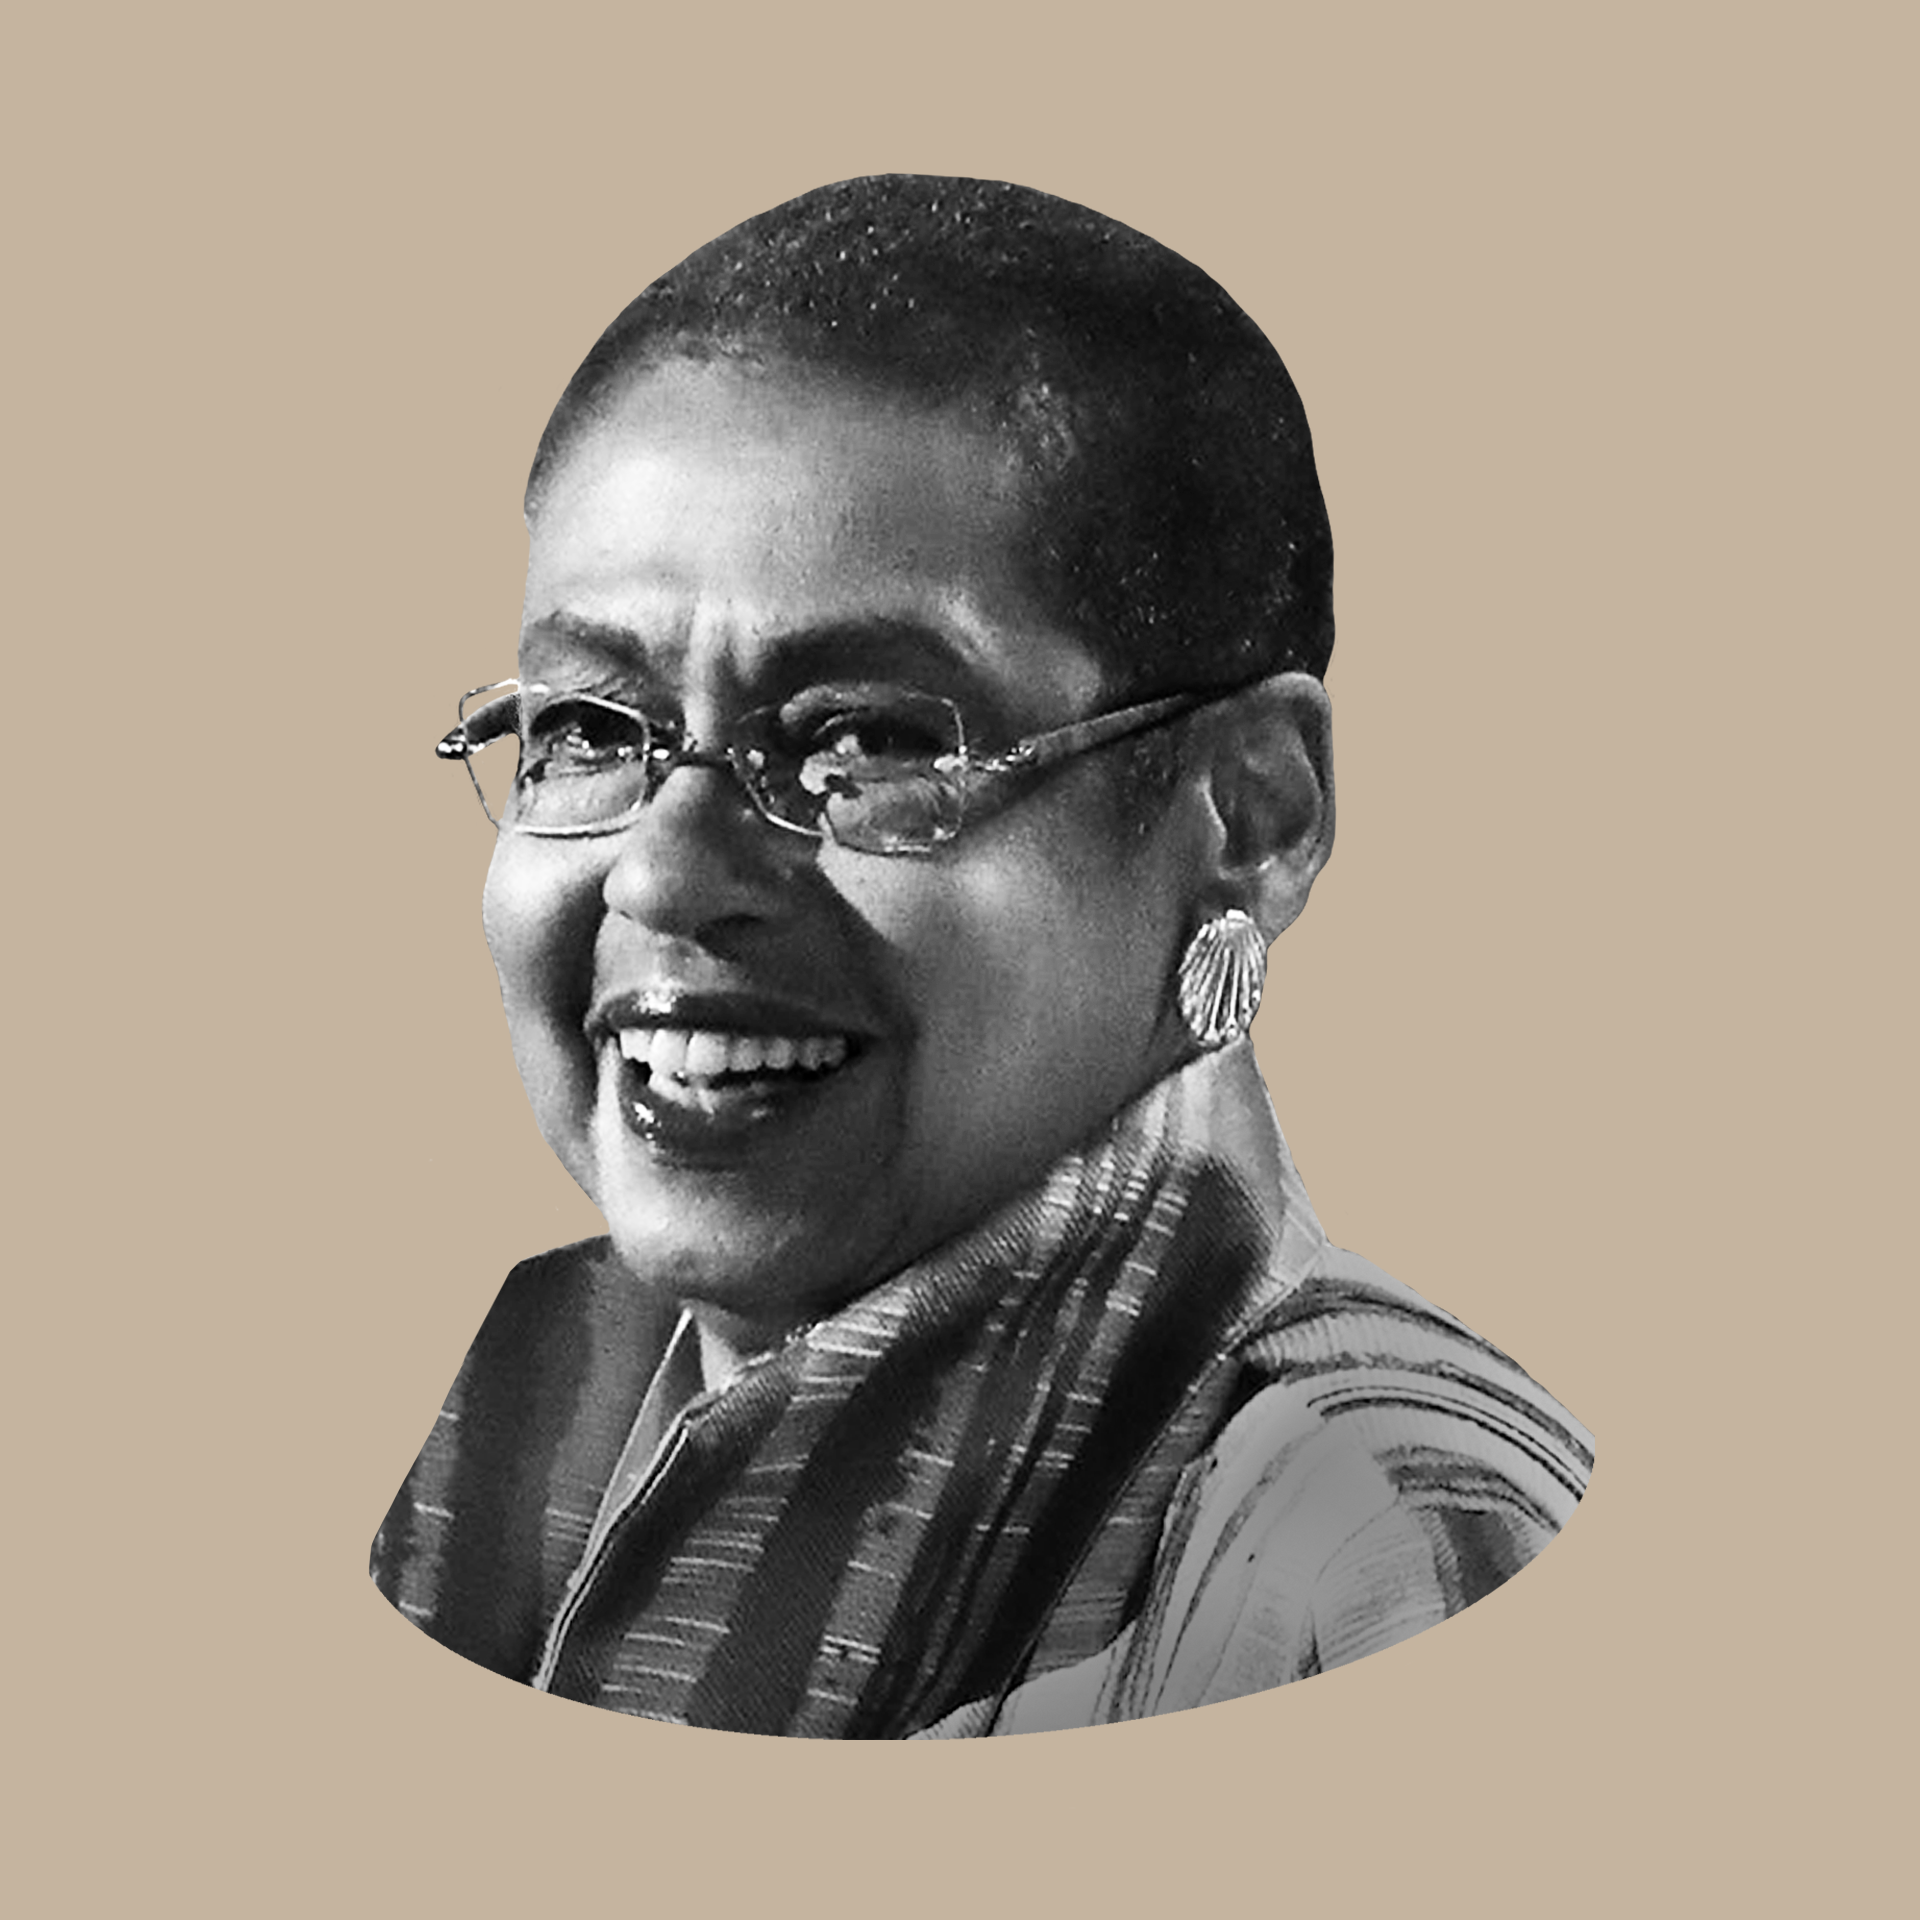 Headshot of Del. Eleanor Holmes Norton